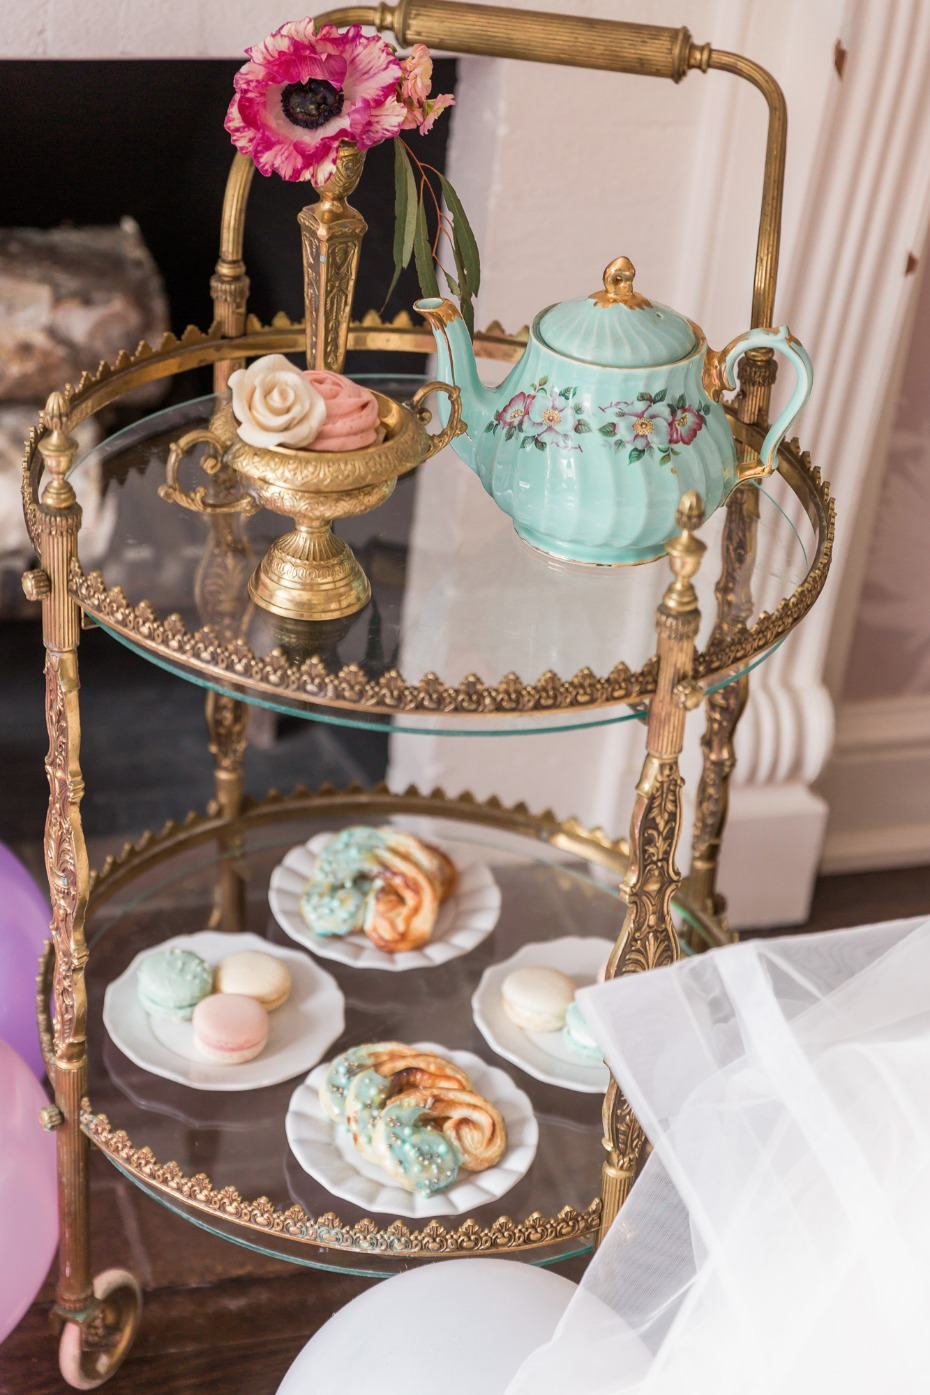 Cute tea cart